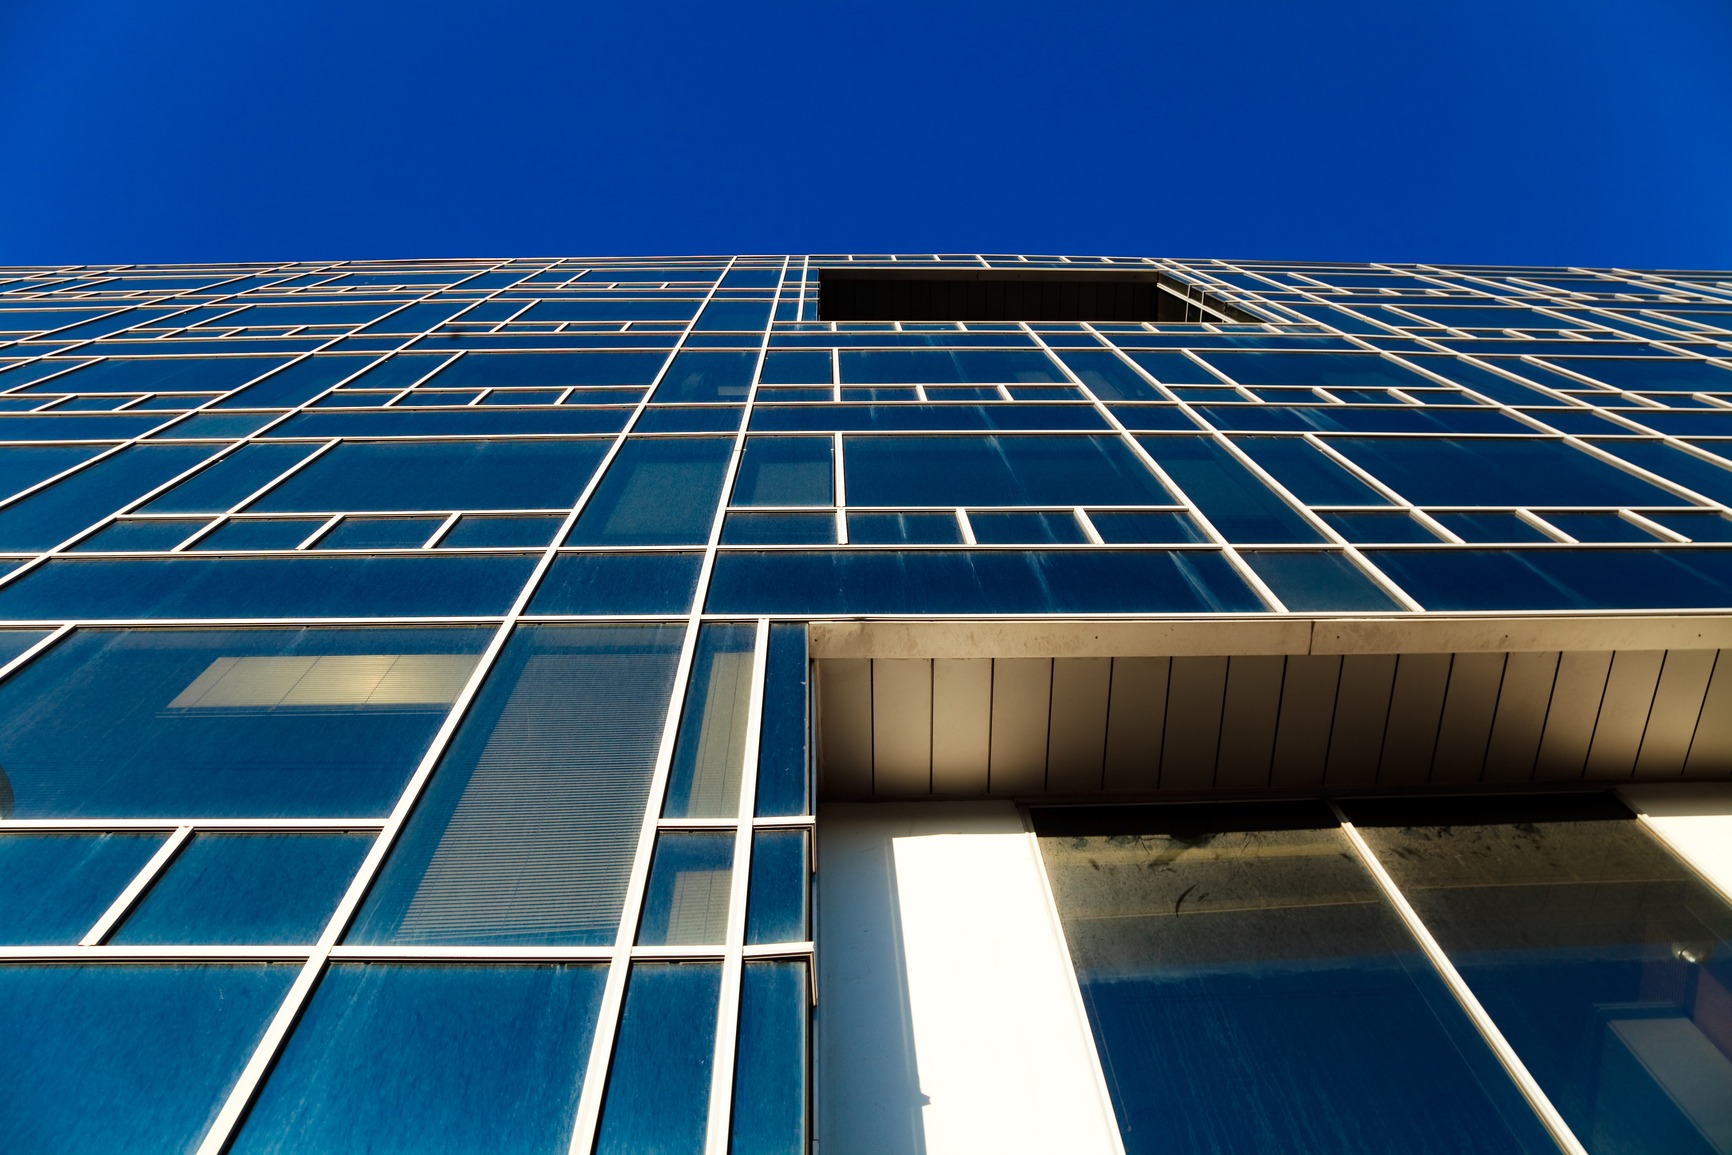 Office building on the basis of large windows and of modern style